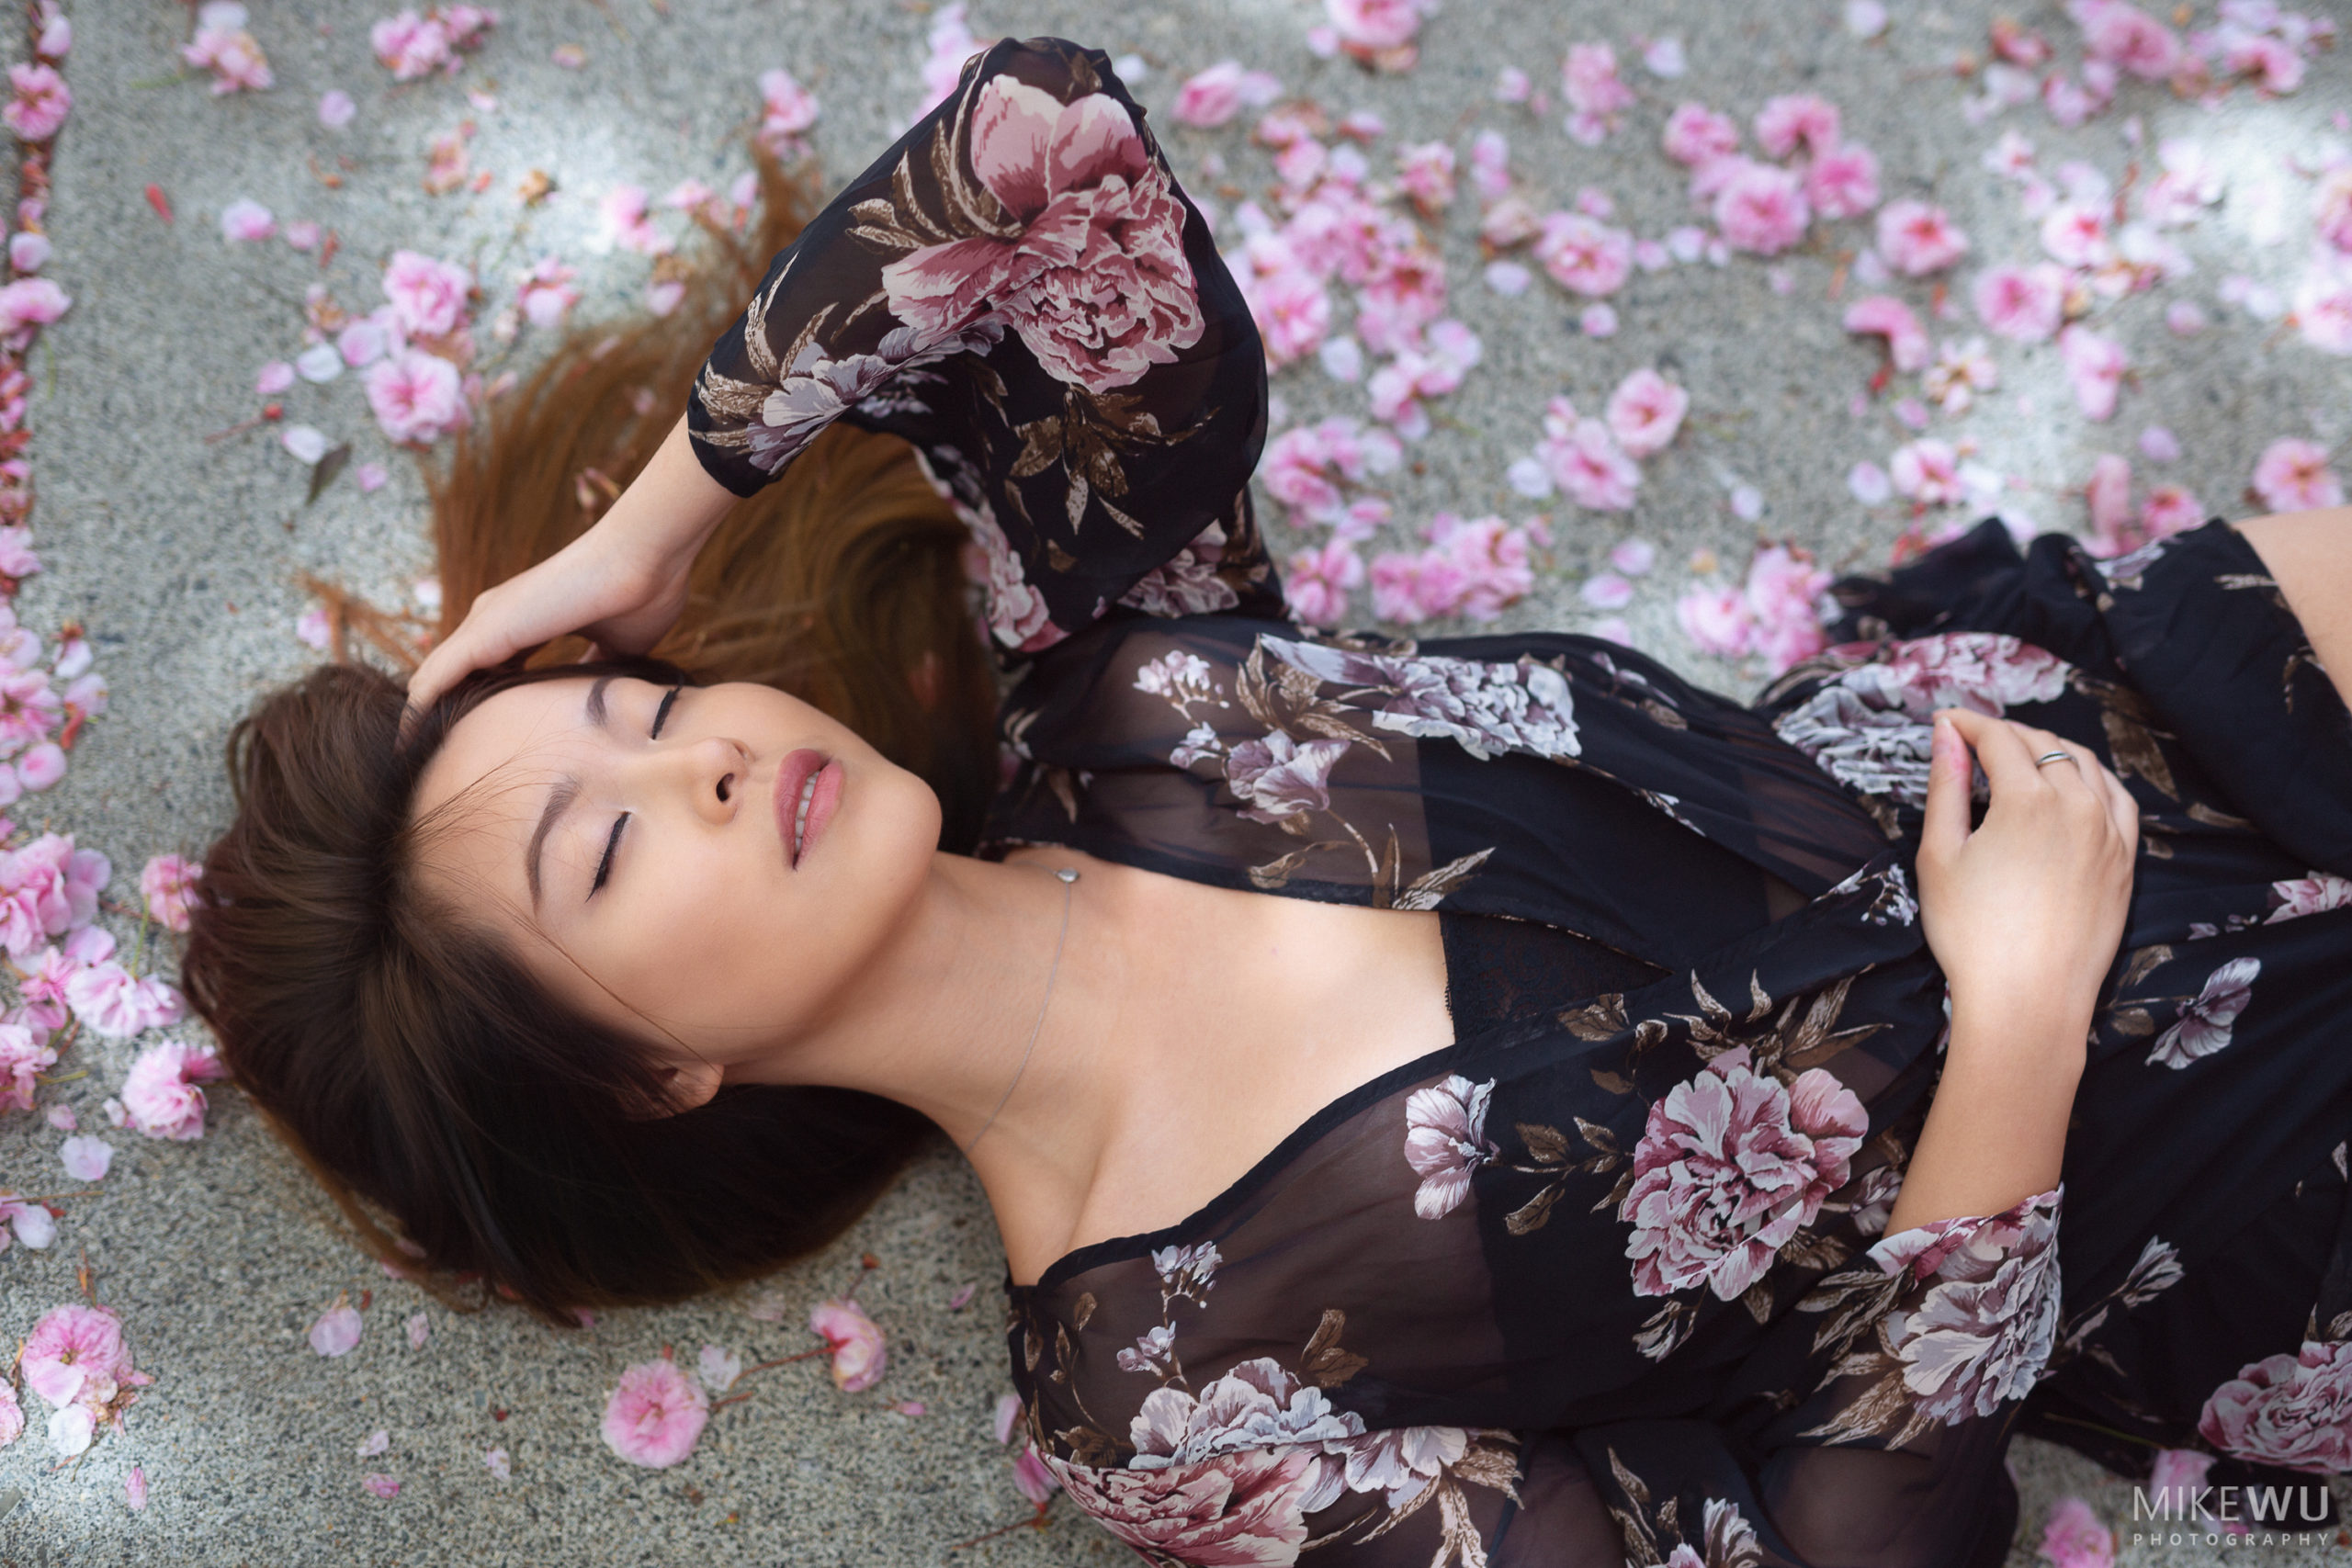 vancouver portrait photographer mike wu cherrry blossom female fine art mike wu photography cherieleexo beauty artistic spring chinese asian